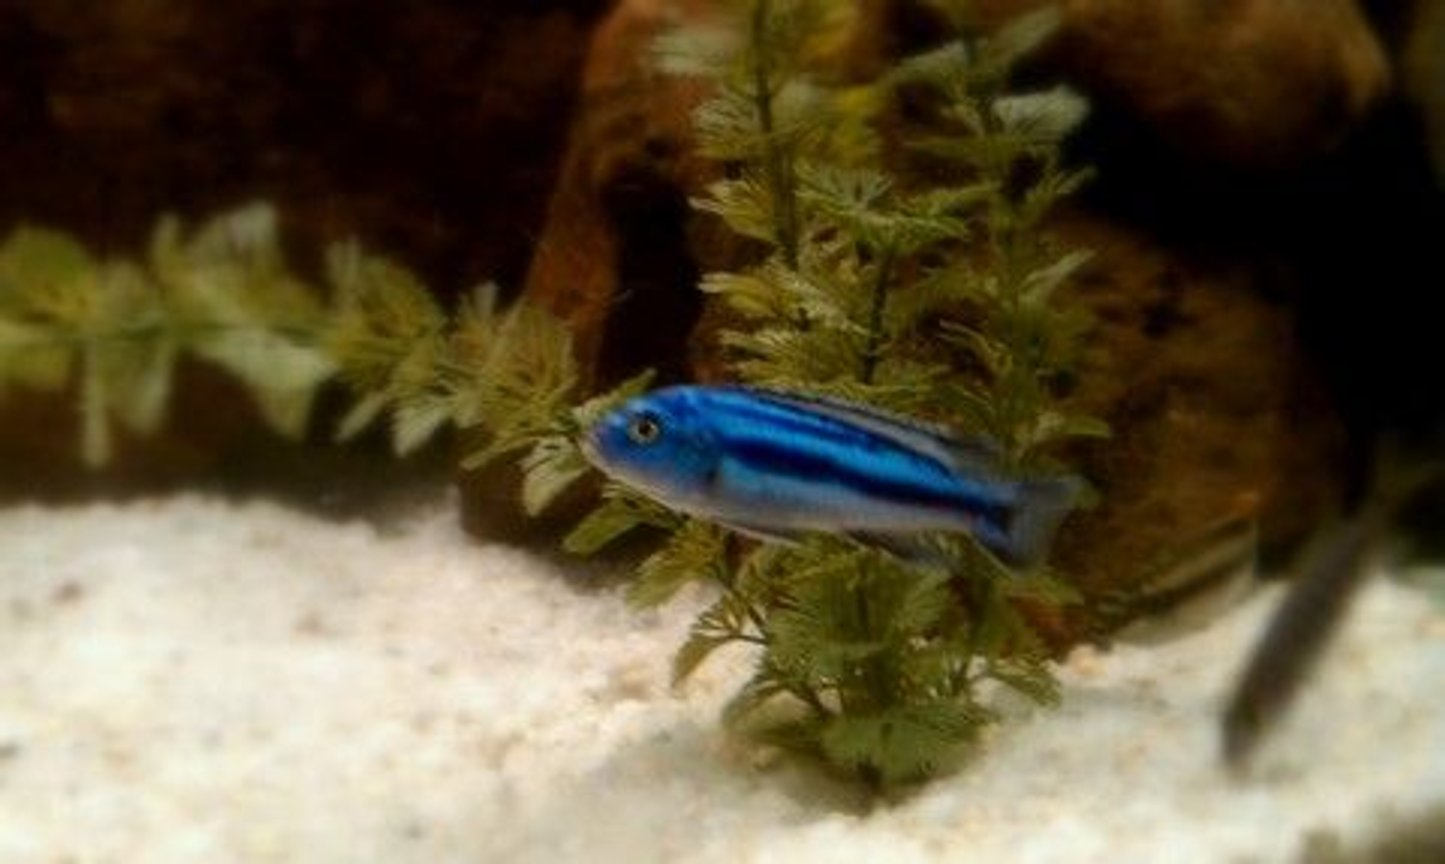 freshwater fish - melanochromis johannii - johanni cichlid stocking in 72 gallons tank - Electric Blue Johanni